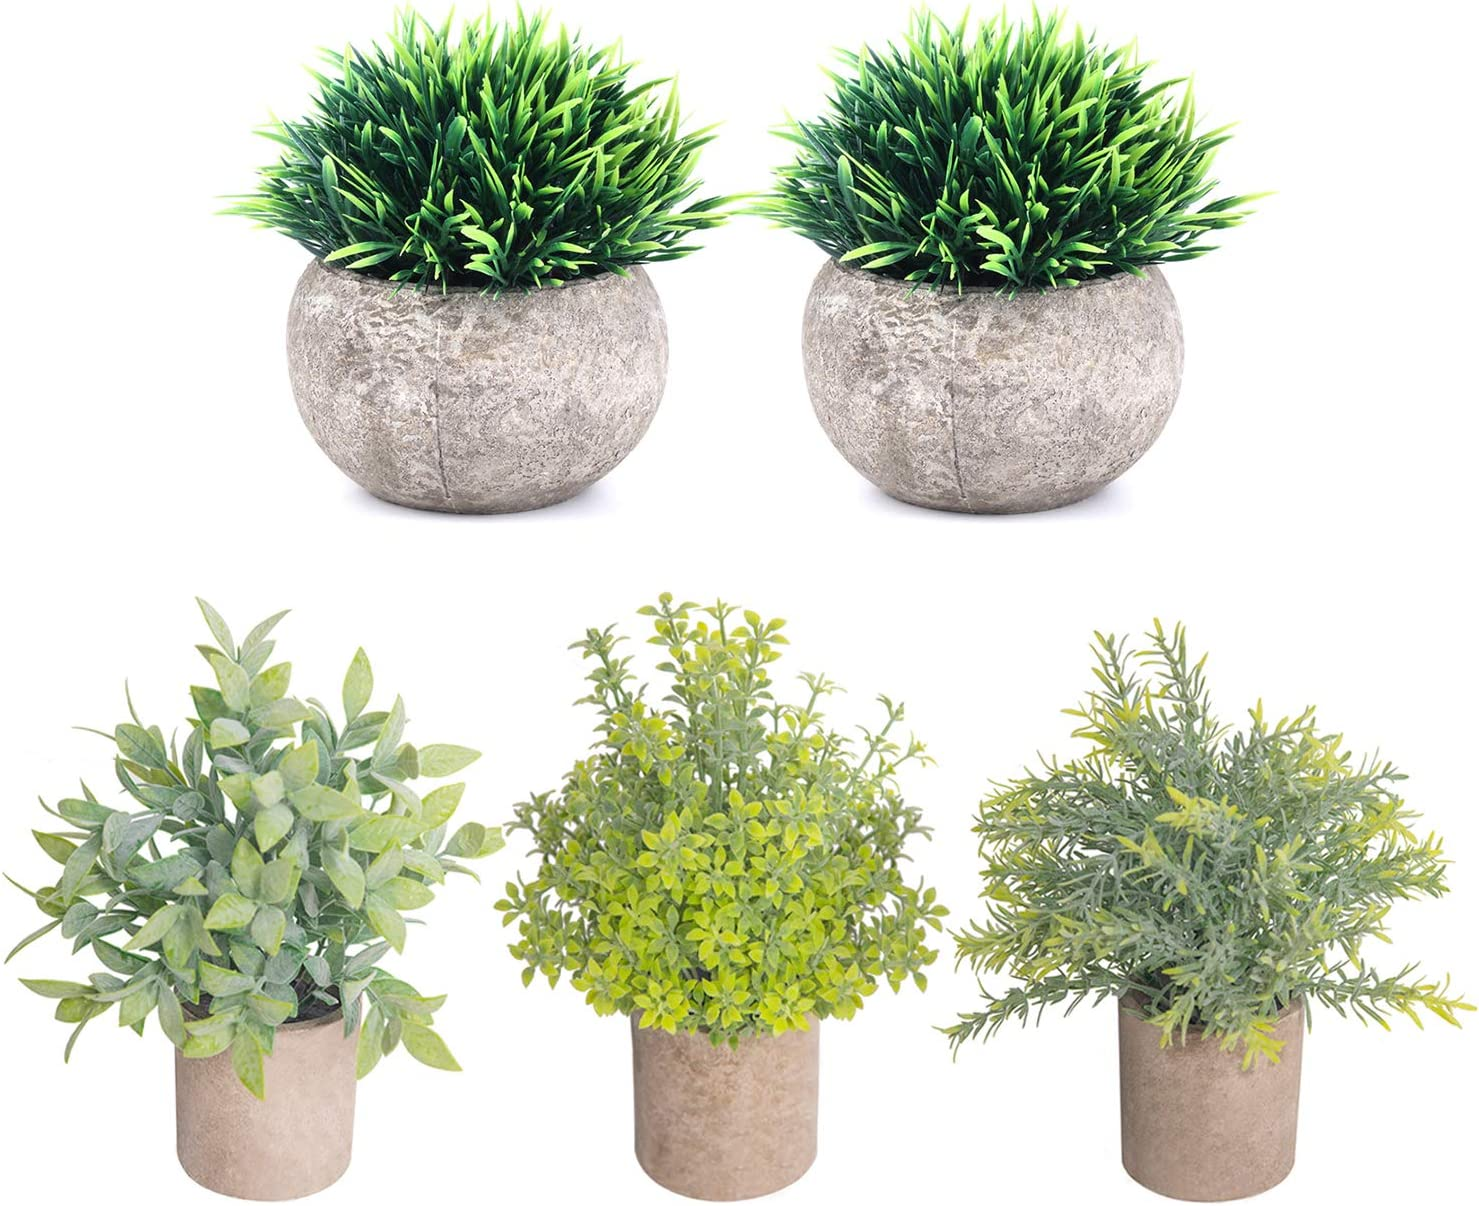 THE BLOOM TIMES 5 Pcs Fake Plants for Bathroom/Home Office Decor, Small Artificial Faux Greenery for House Decorations